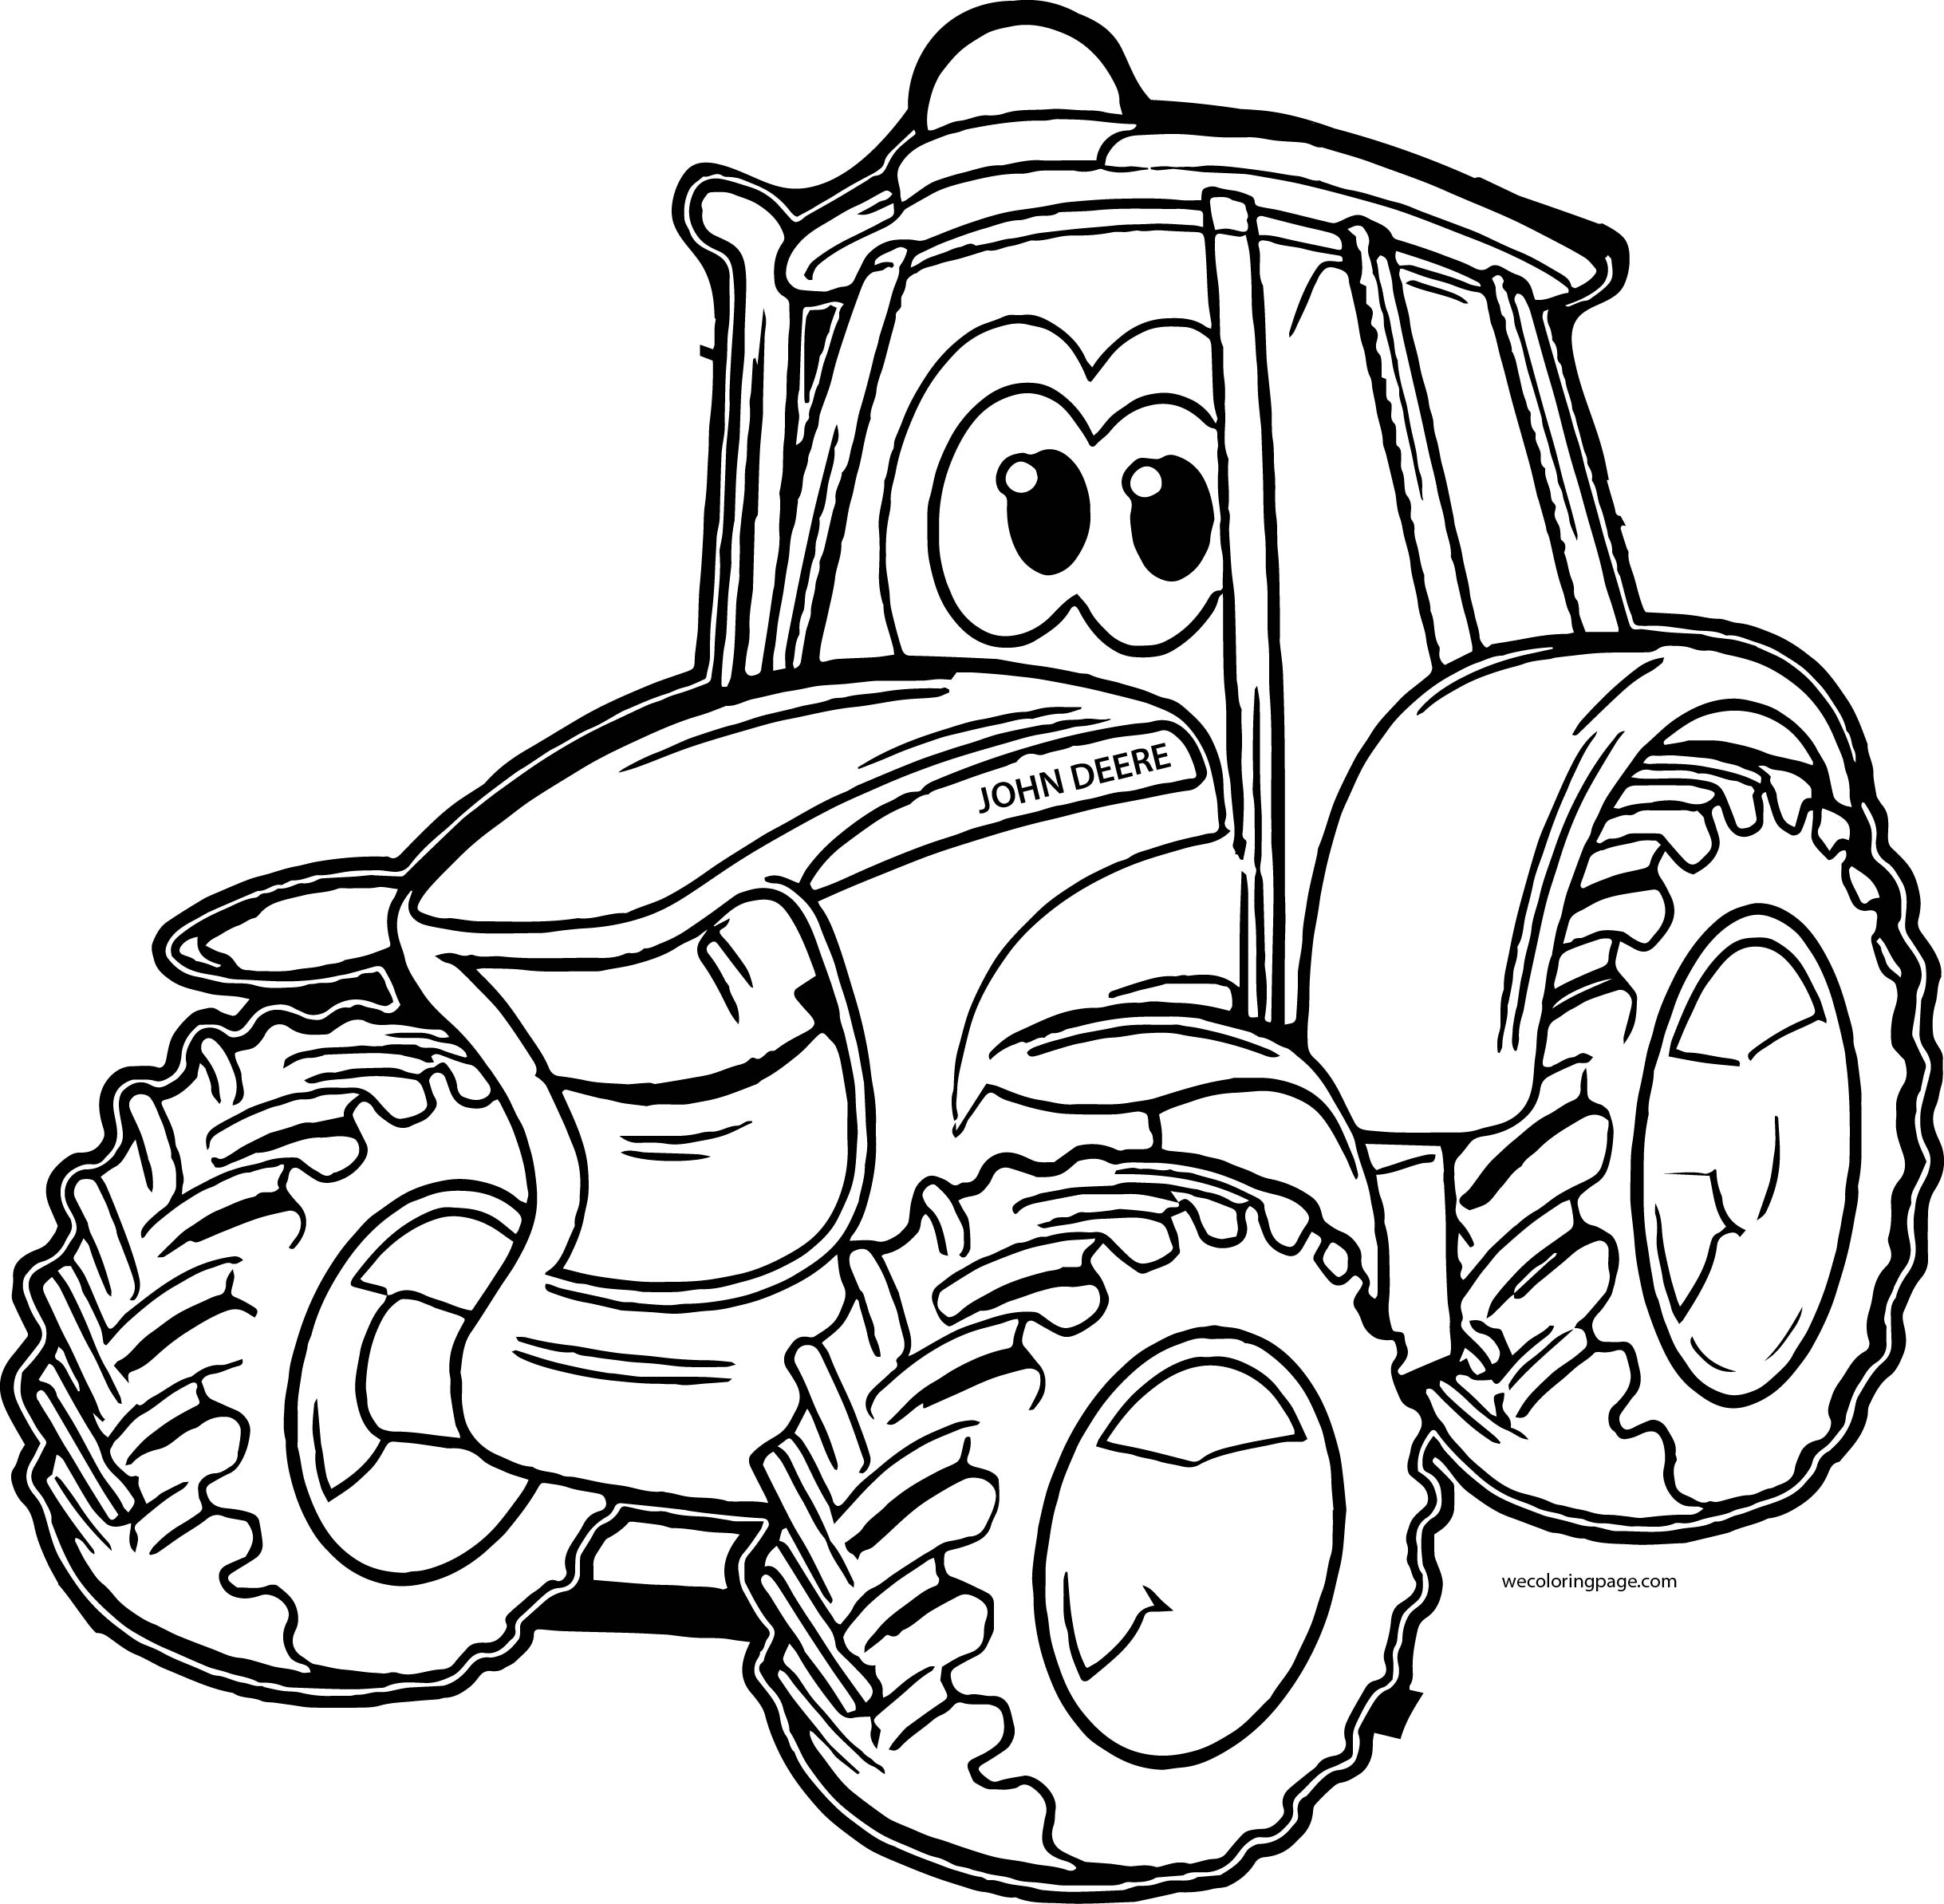 Coloring pages 4 wheeler - John Johnny Deere Tractor Coloring Pages